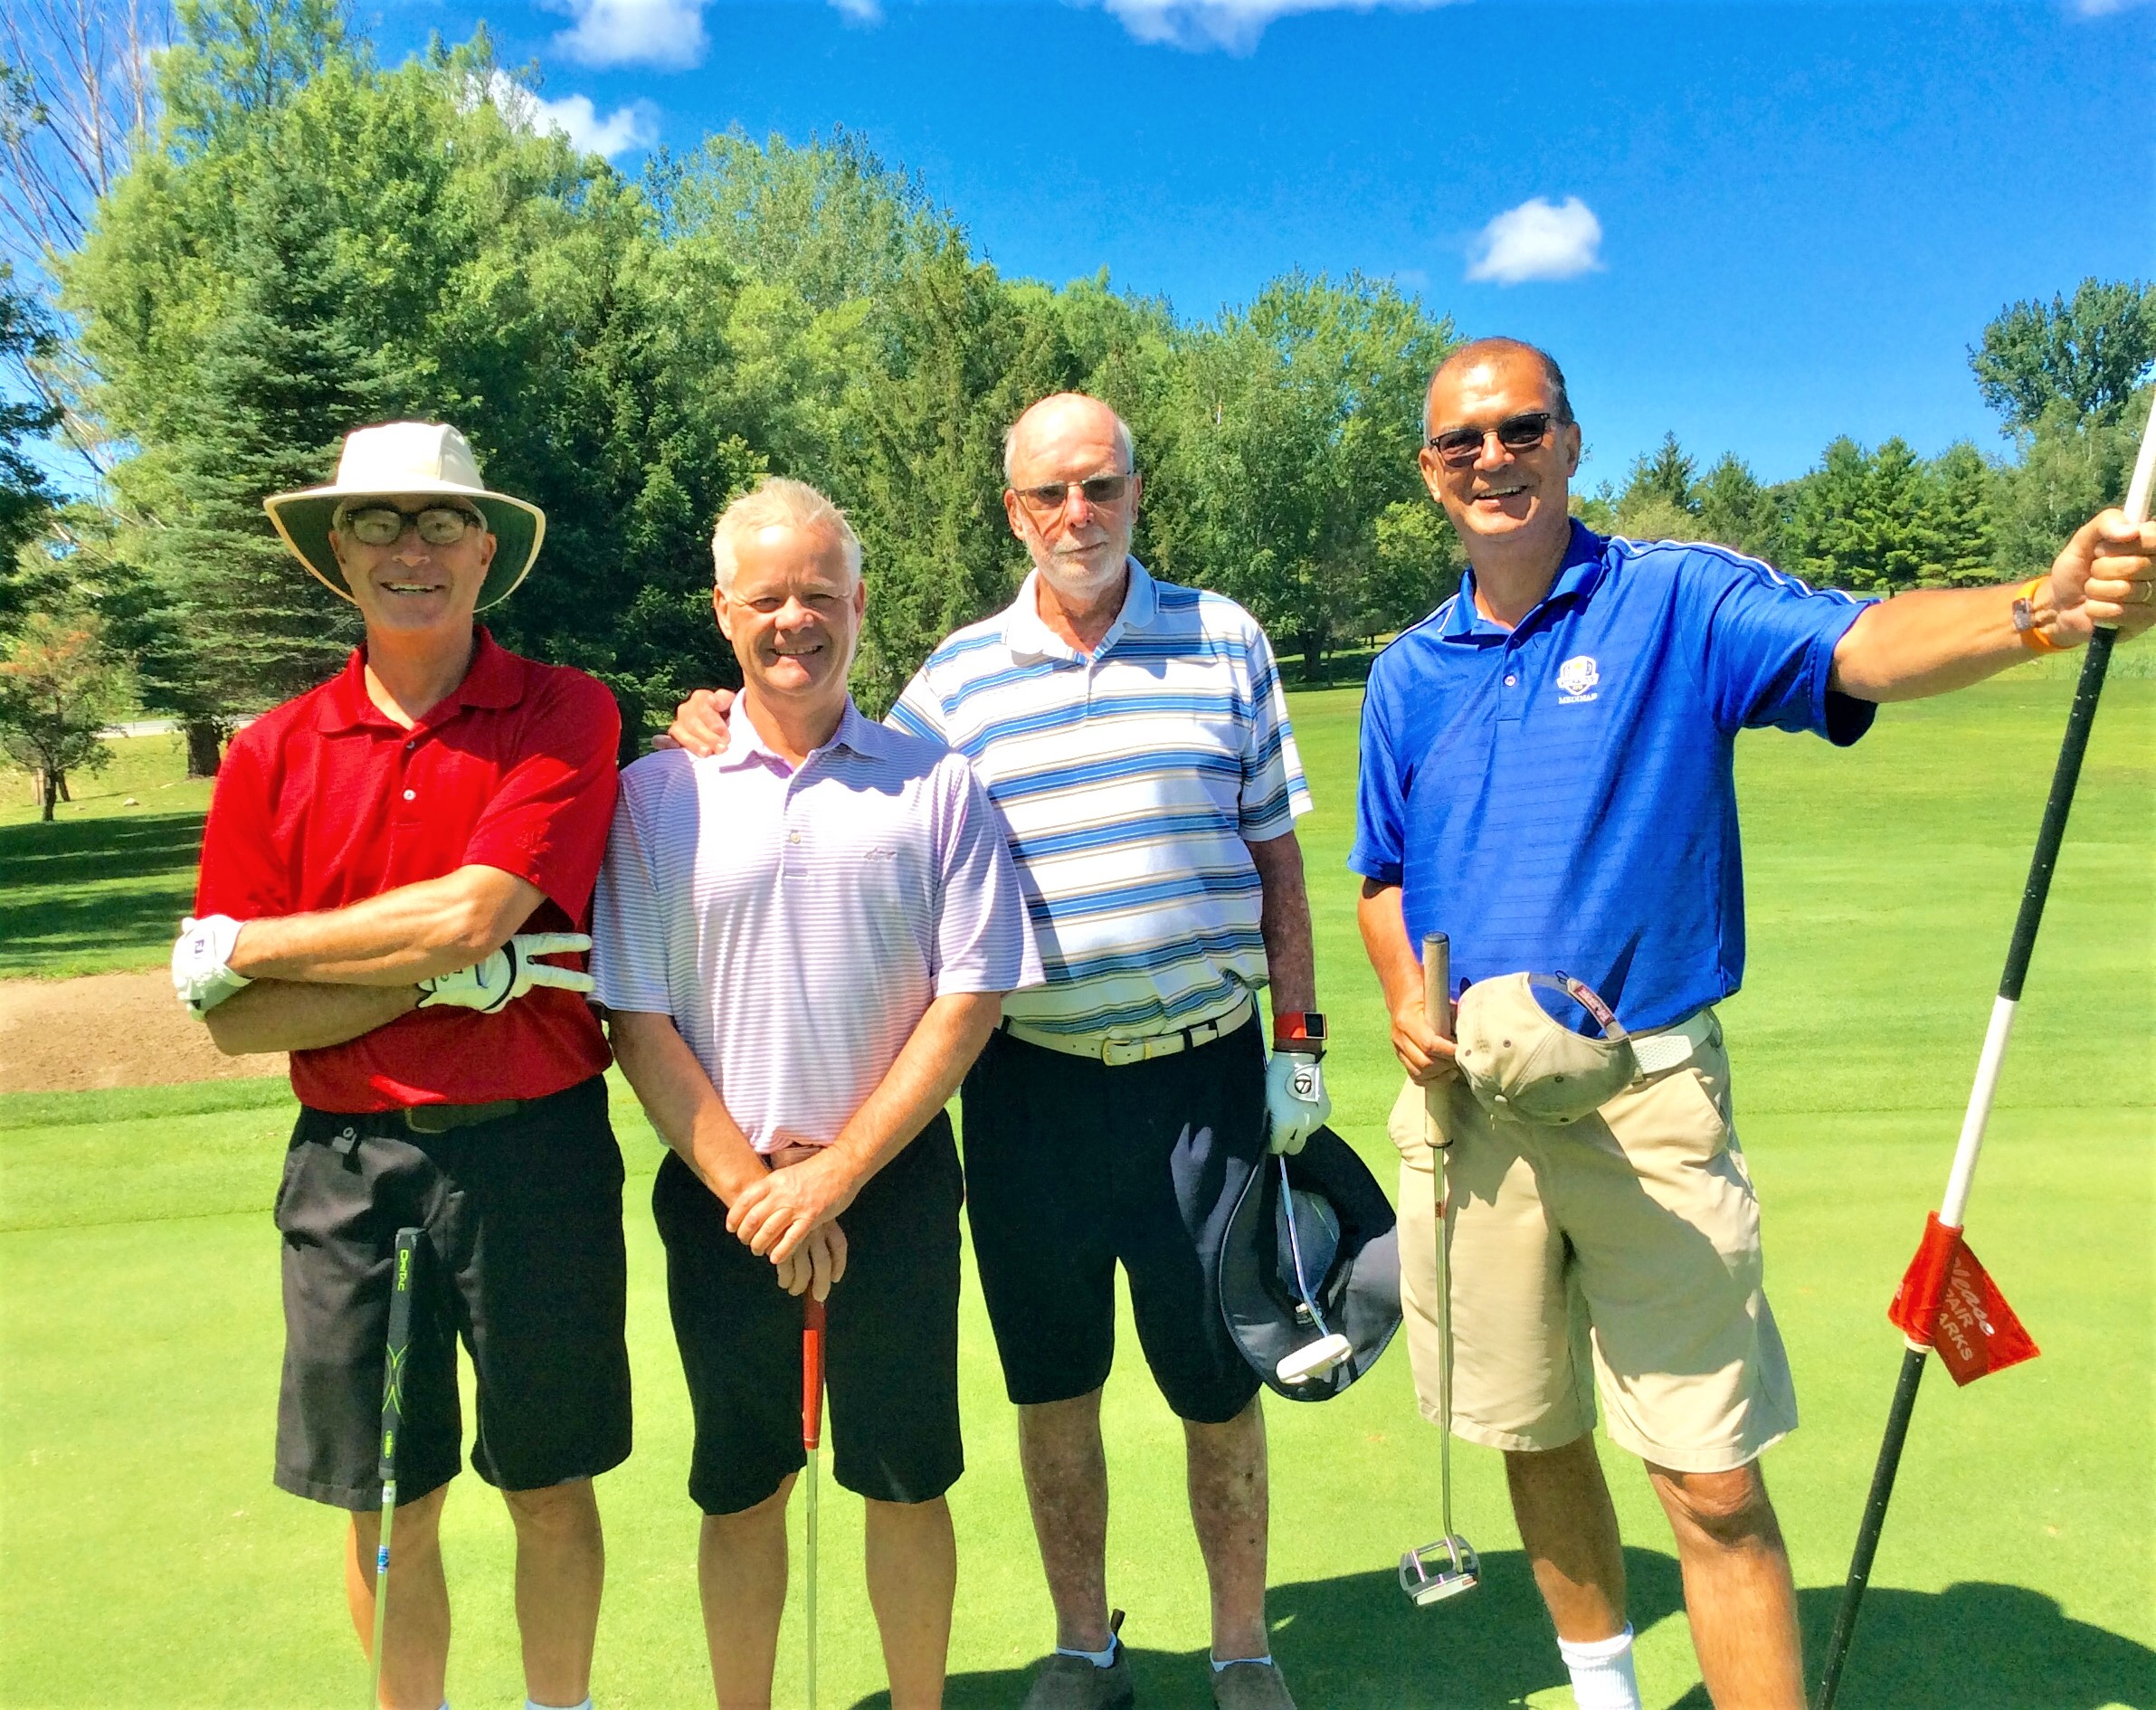 Some of our board members golfing